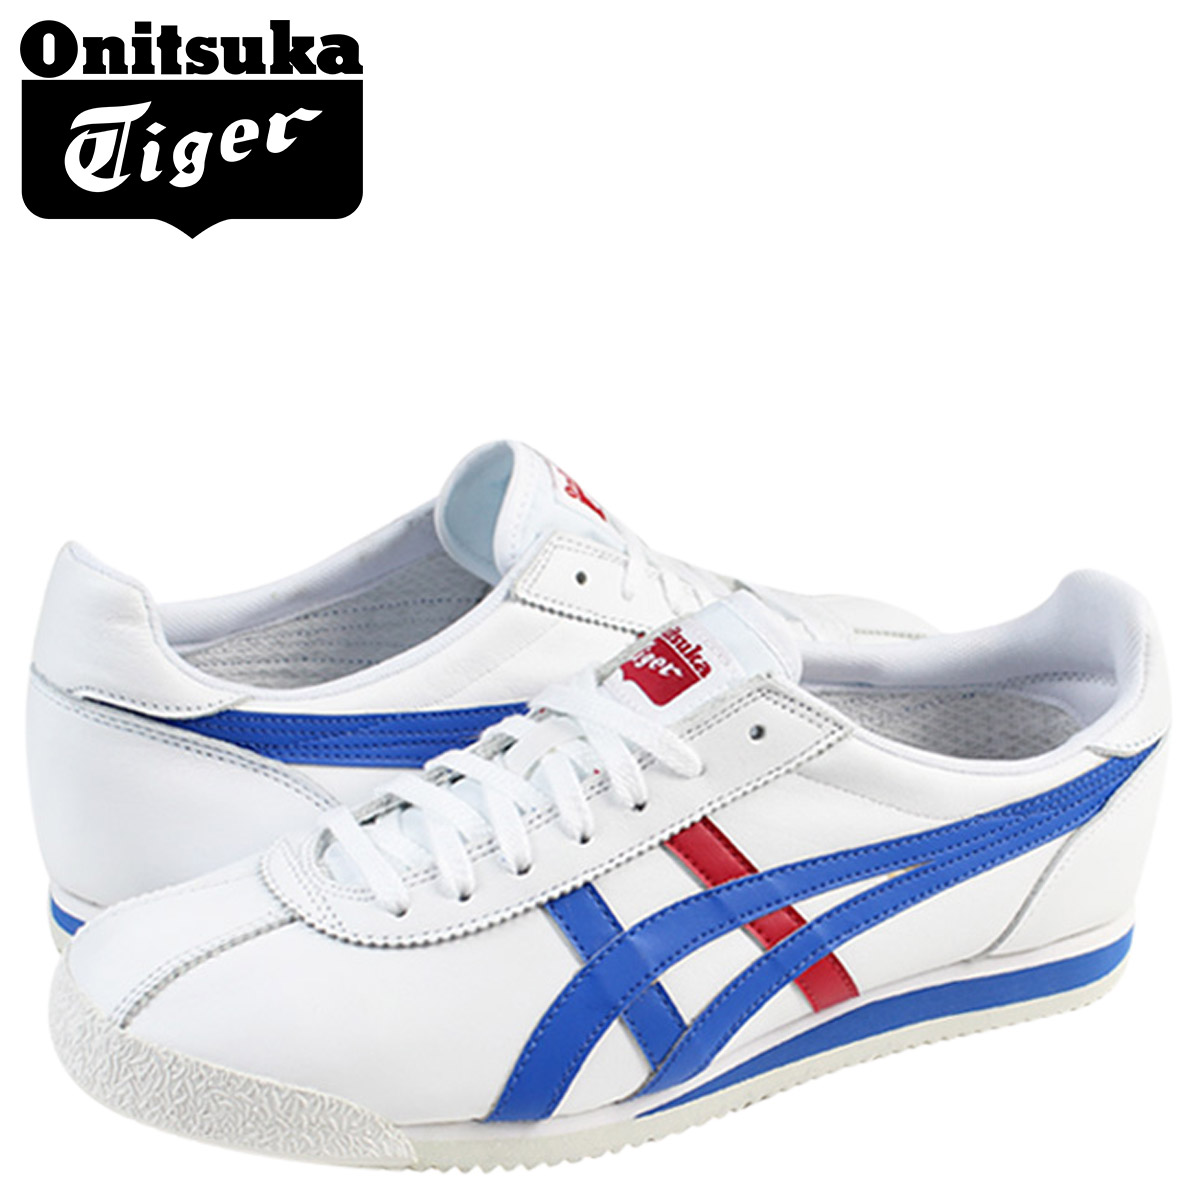 huge inventory purchase genuine new appearance Onitsuka tiger ASICS Onitsuka Tiger asics CORSAIR TH319L-0142 sneakers  Corsair leather men